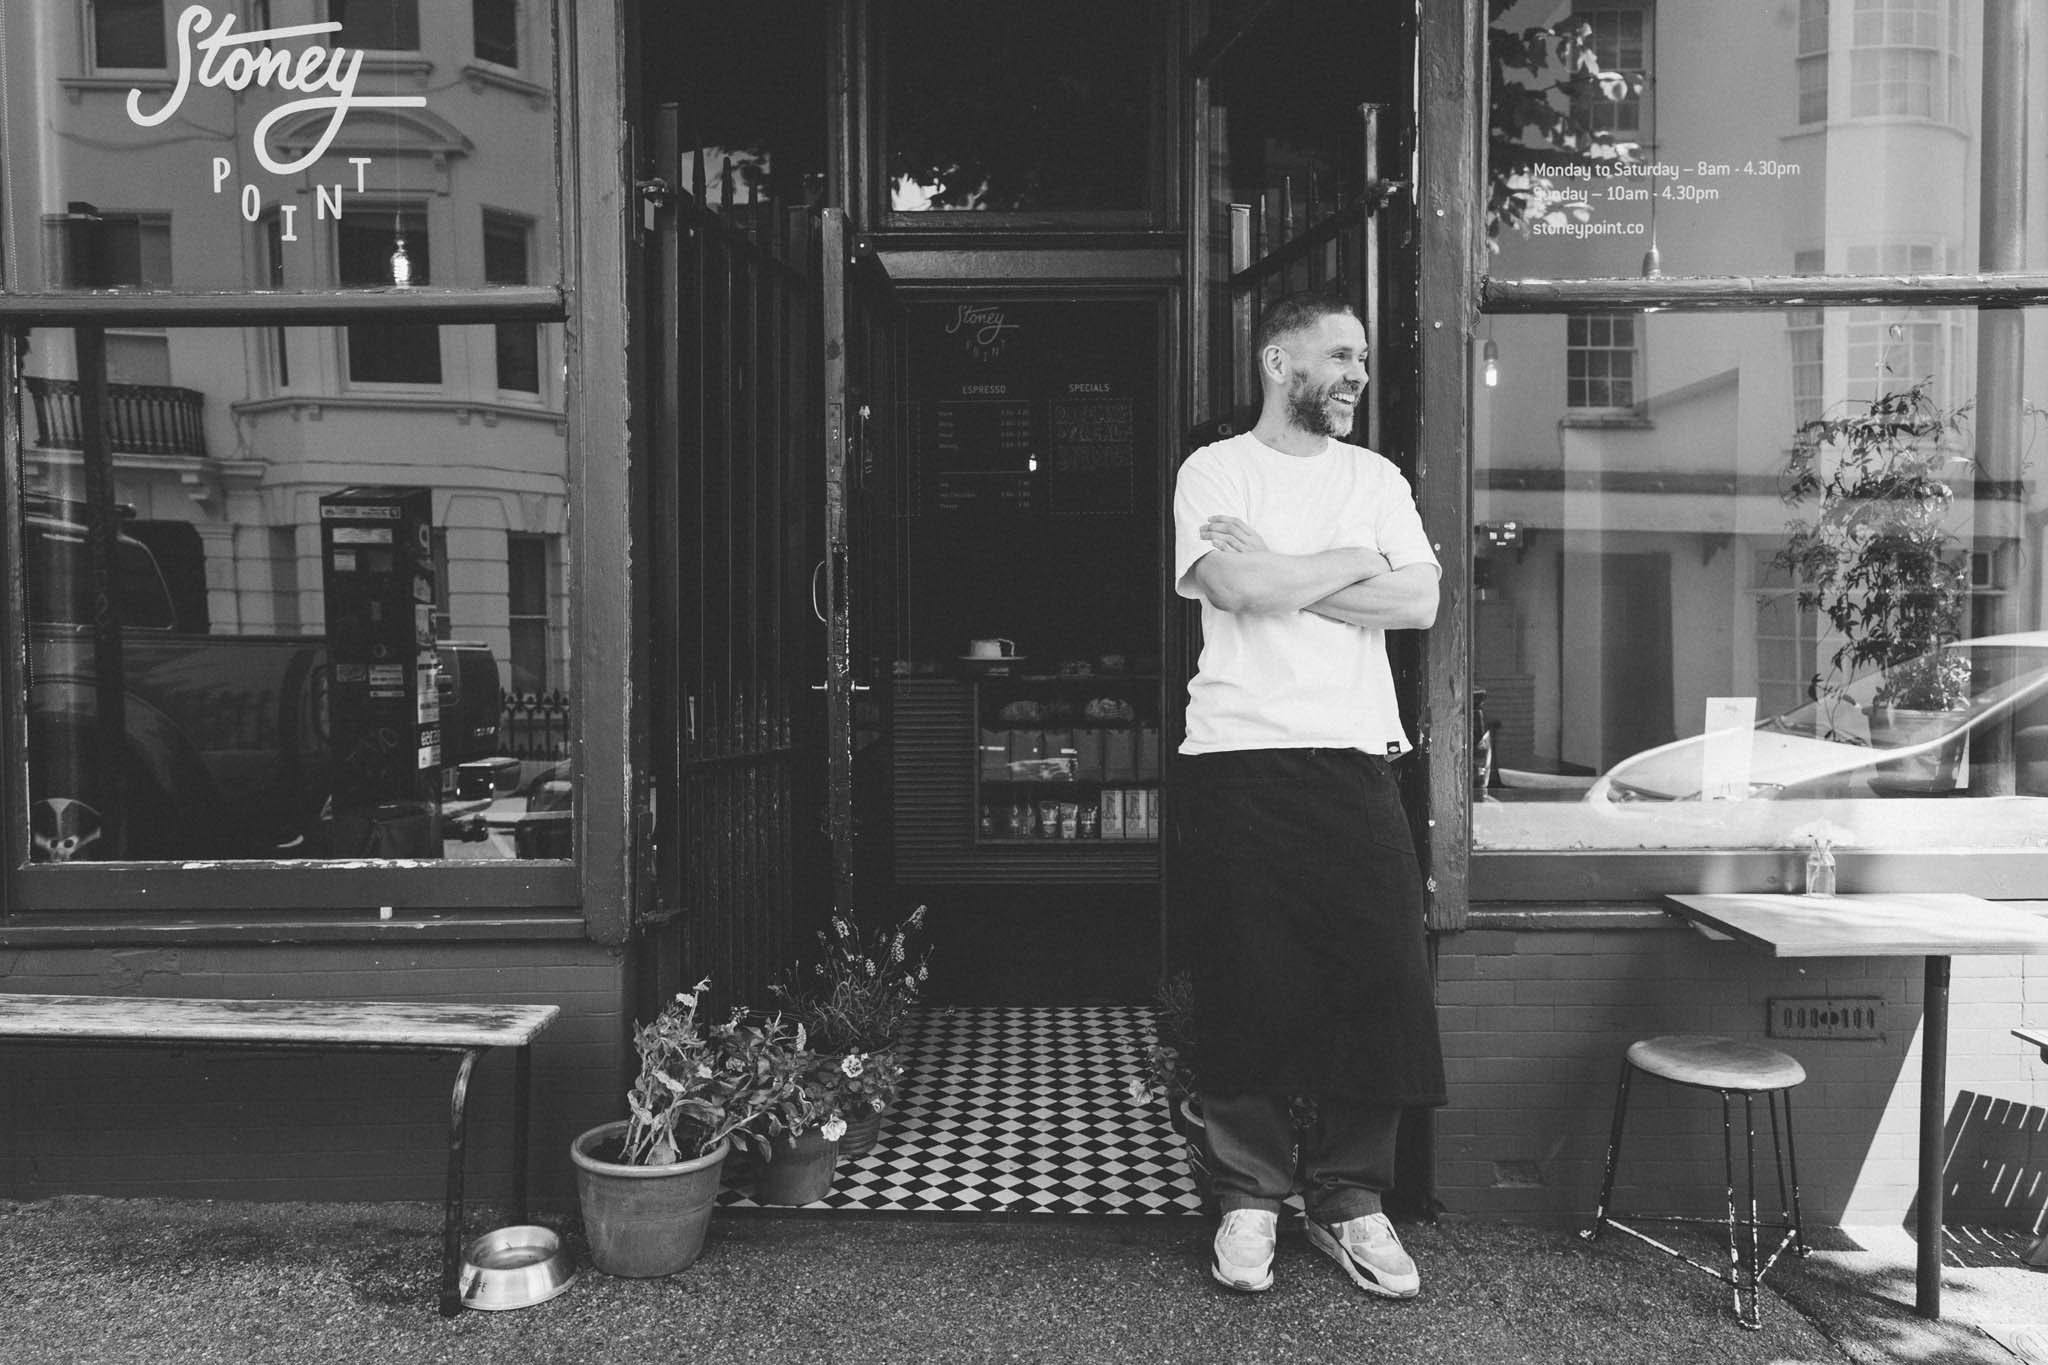 Stoney Point is a small but perfectly formed café in Hove on the border of Brighton. They serve coffee brewed to an exact temperature and play music to get lost in. Captured by Brighton food photographer Emma Gutteridge.